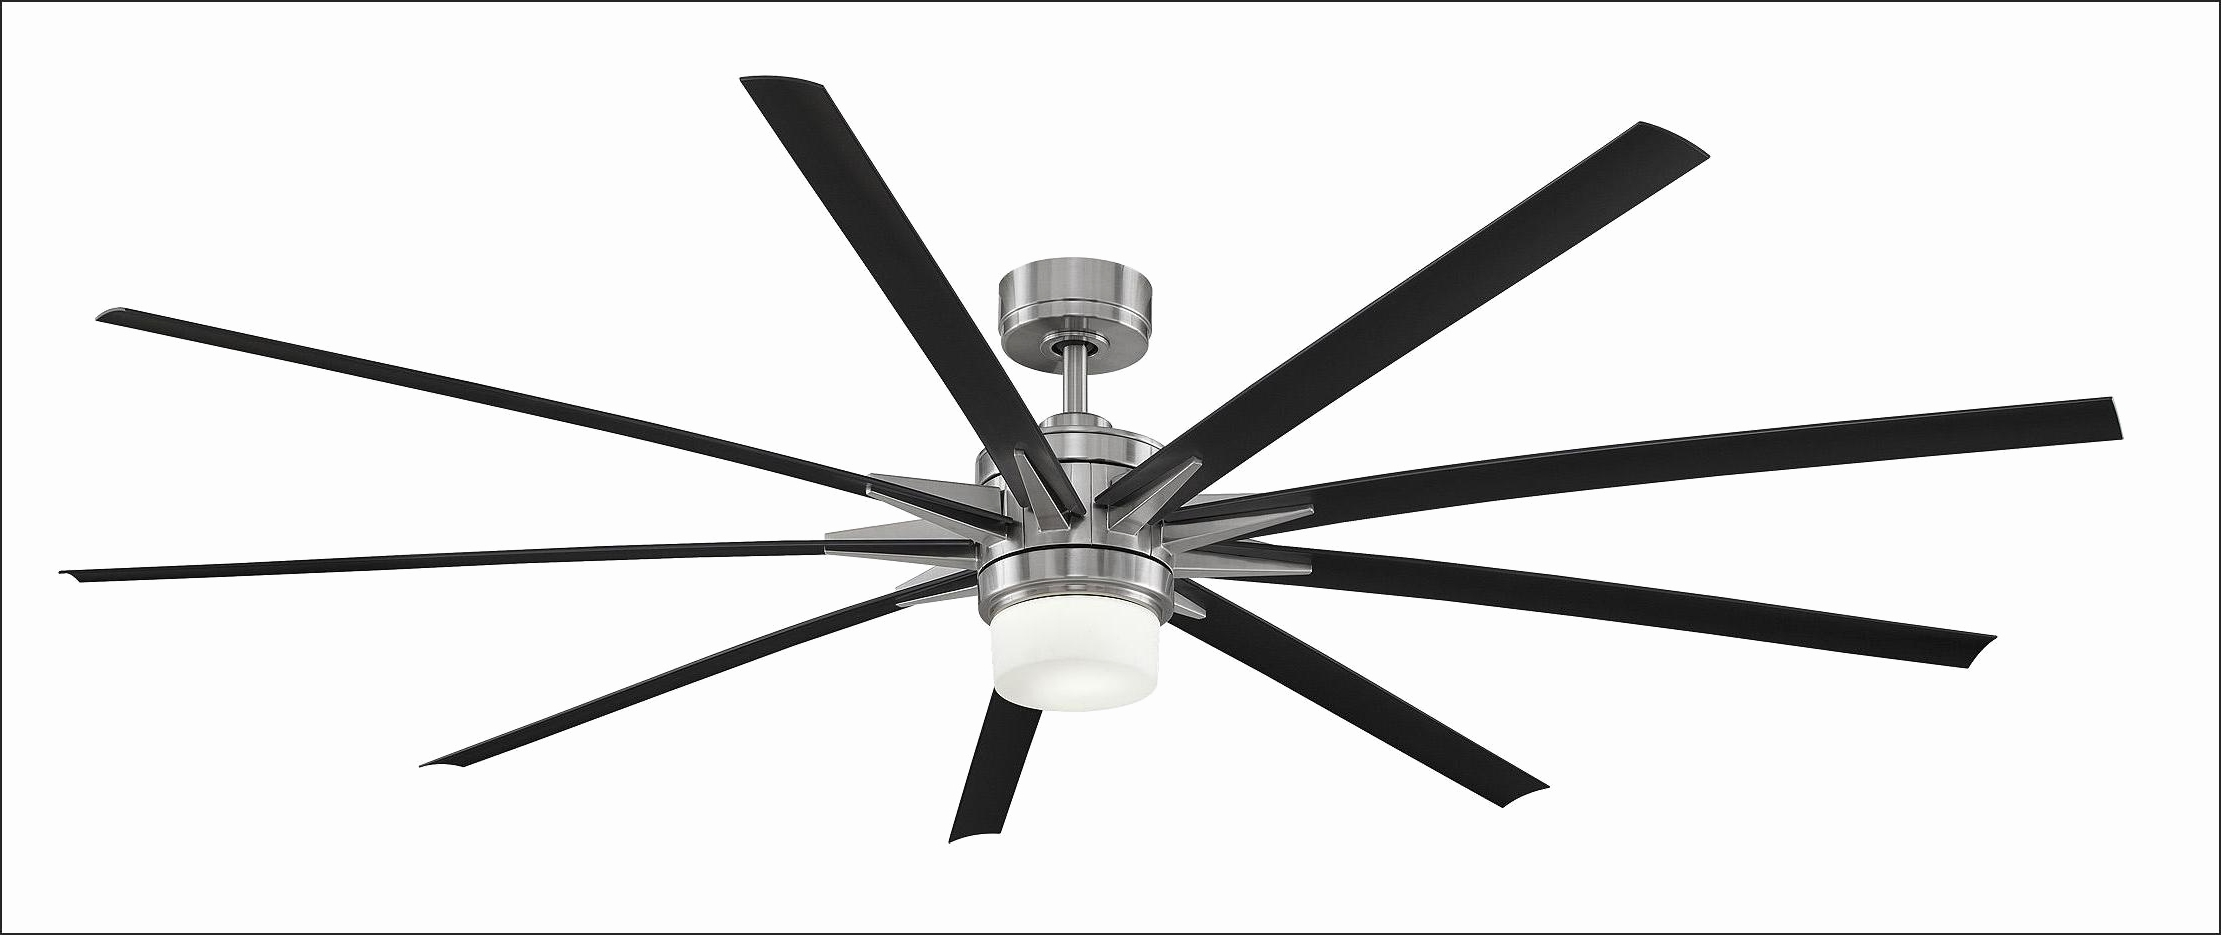 Current Double Ceiling Fan Lowes Fresh Furniture Lowes Outdoor Ceiling Fans Regarding Outdoor Ceiling Fans At Lowes (View 4 of 20)